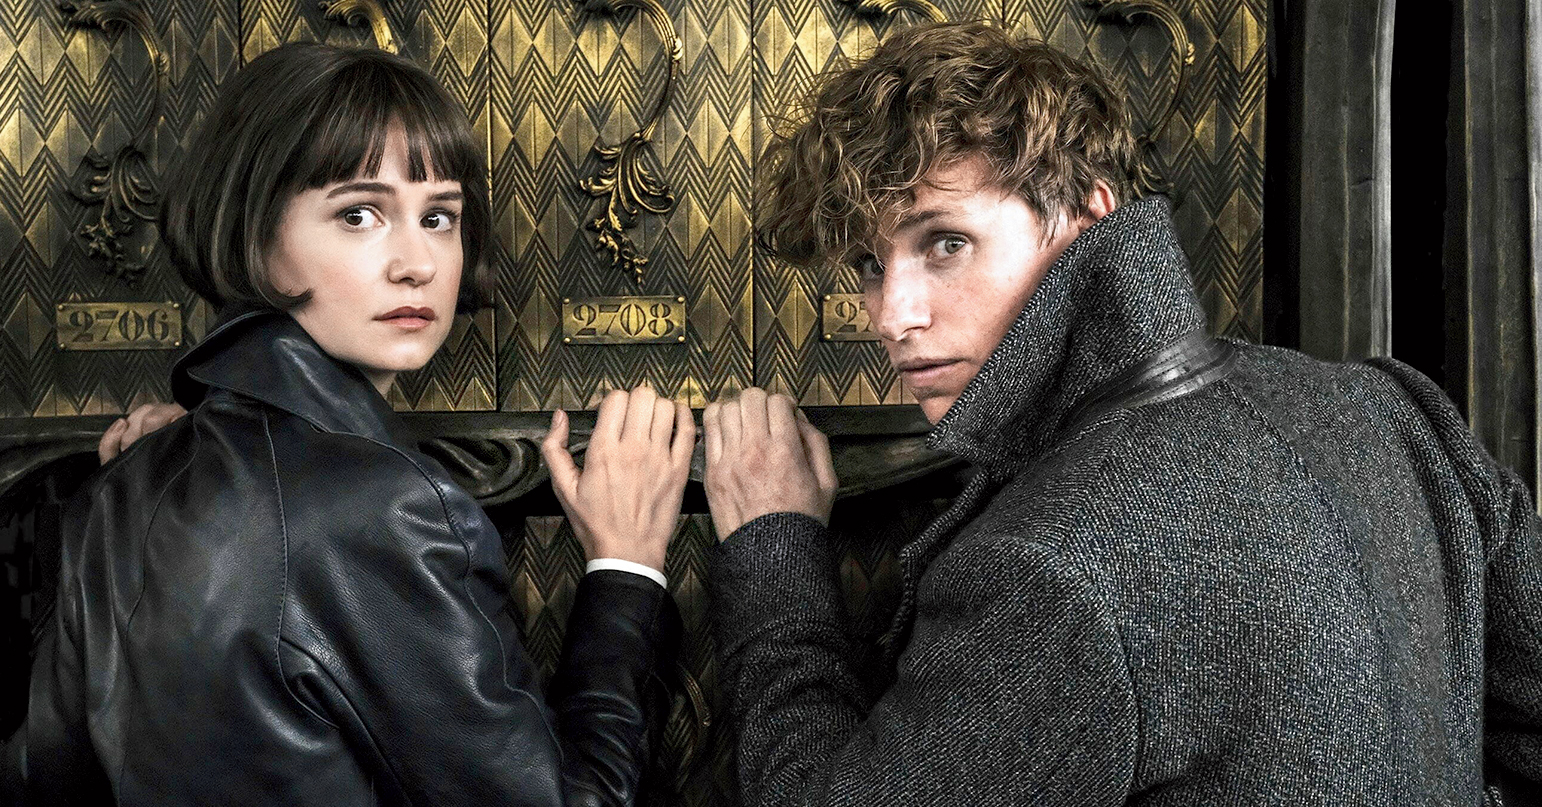 Twists and turns in Fantastic Beasts: The Crimes Of Grindelwald